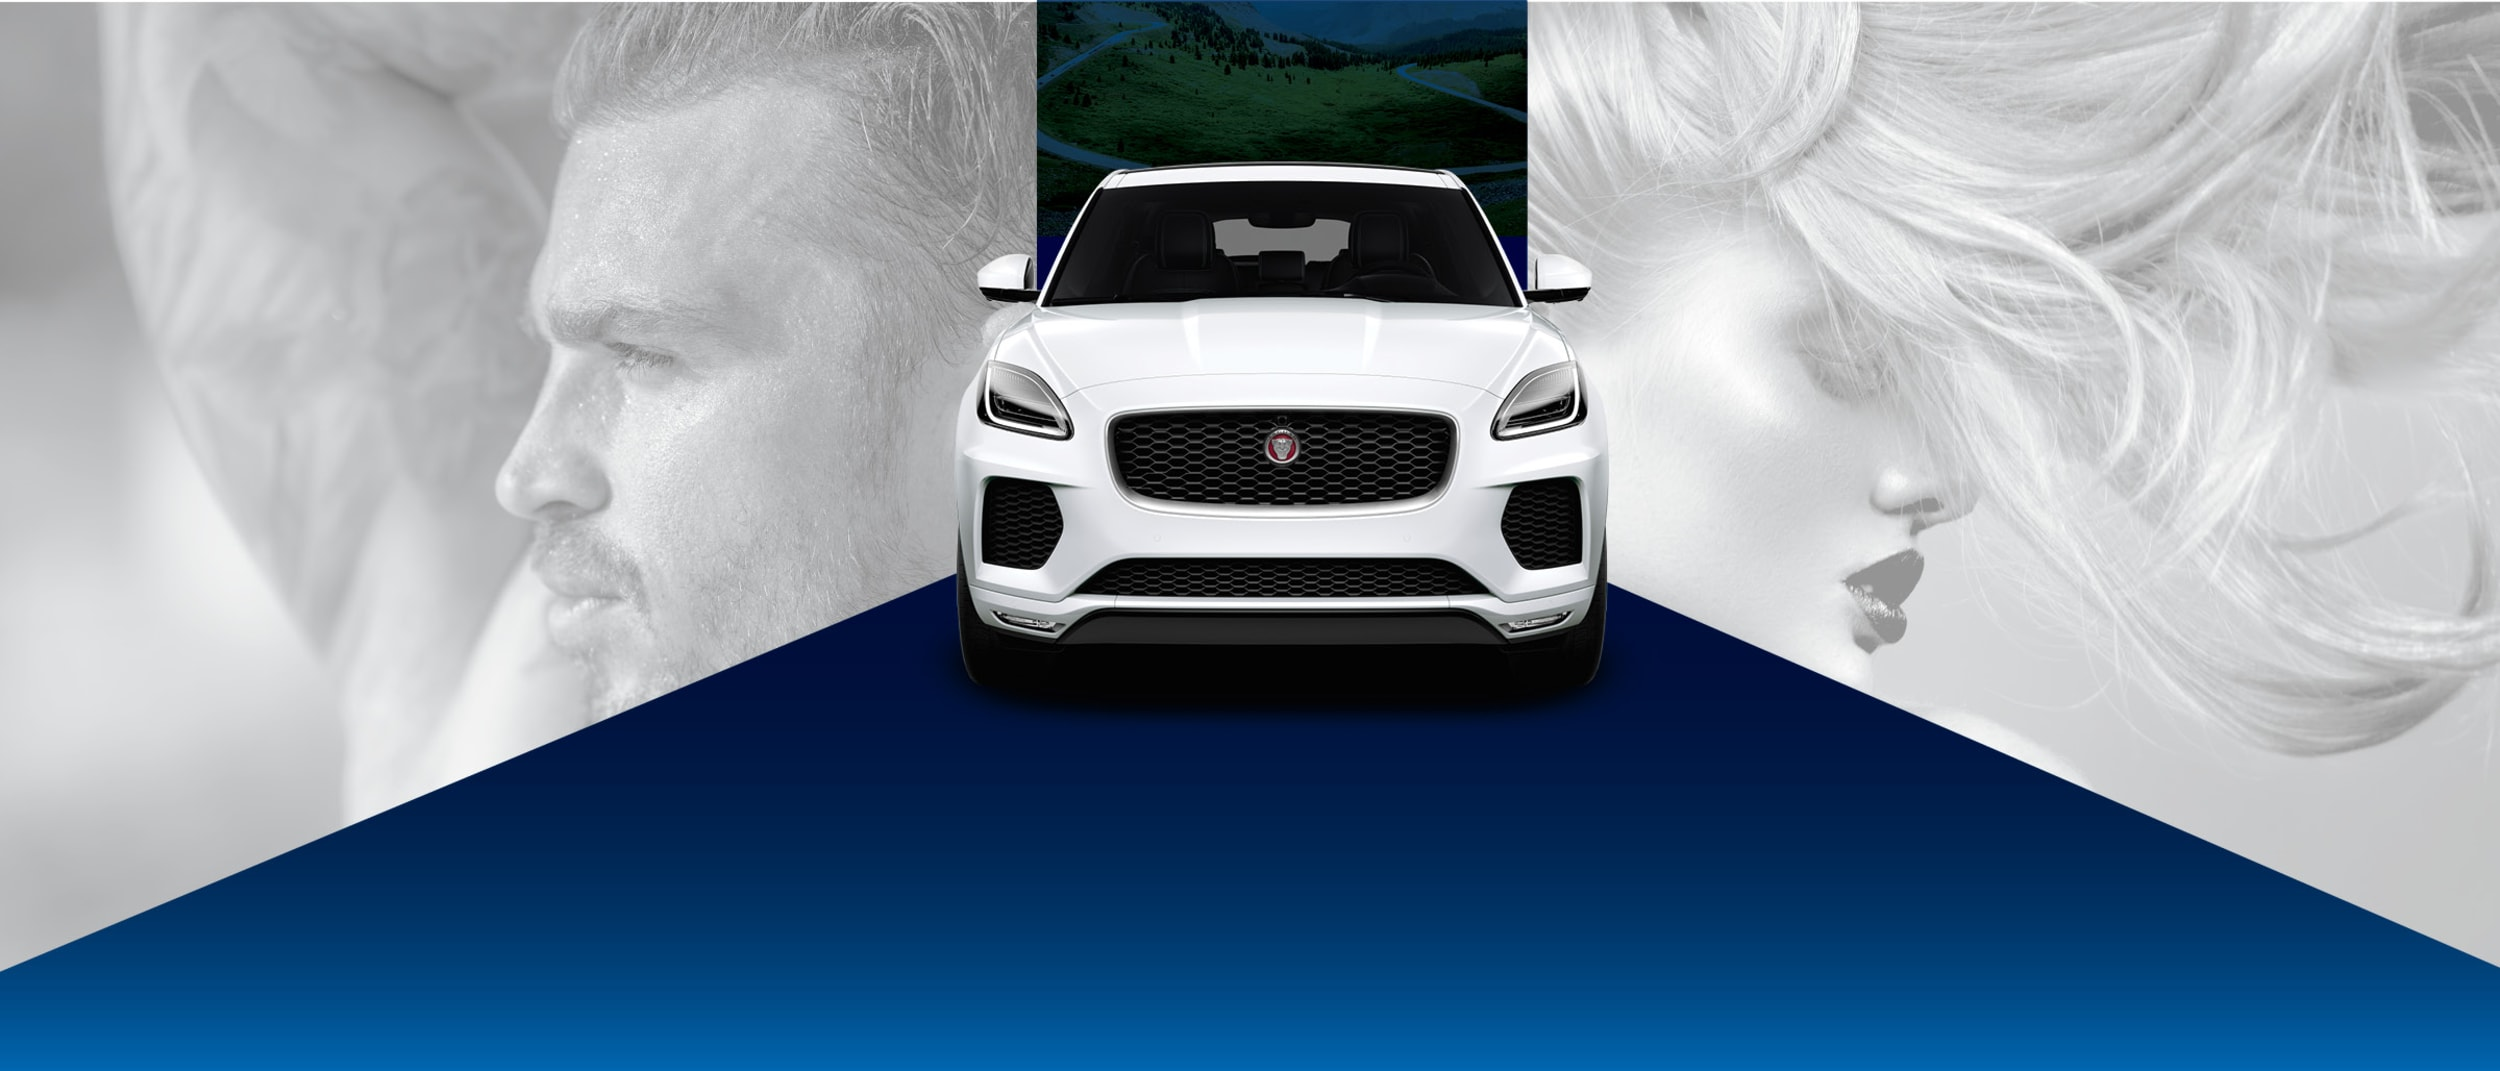 Just Cuts is giving away a Jaguar E-pace